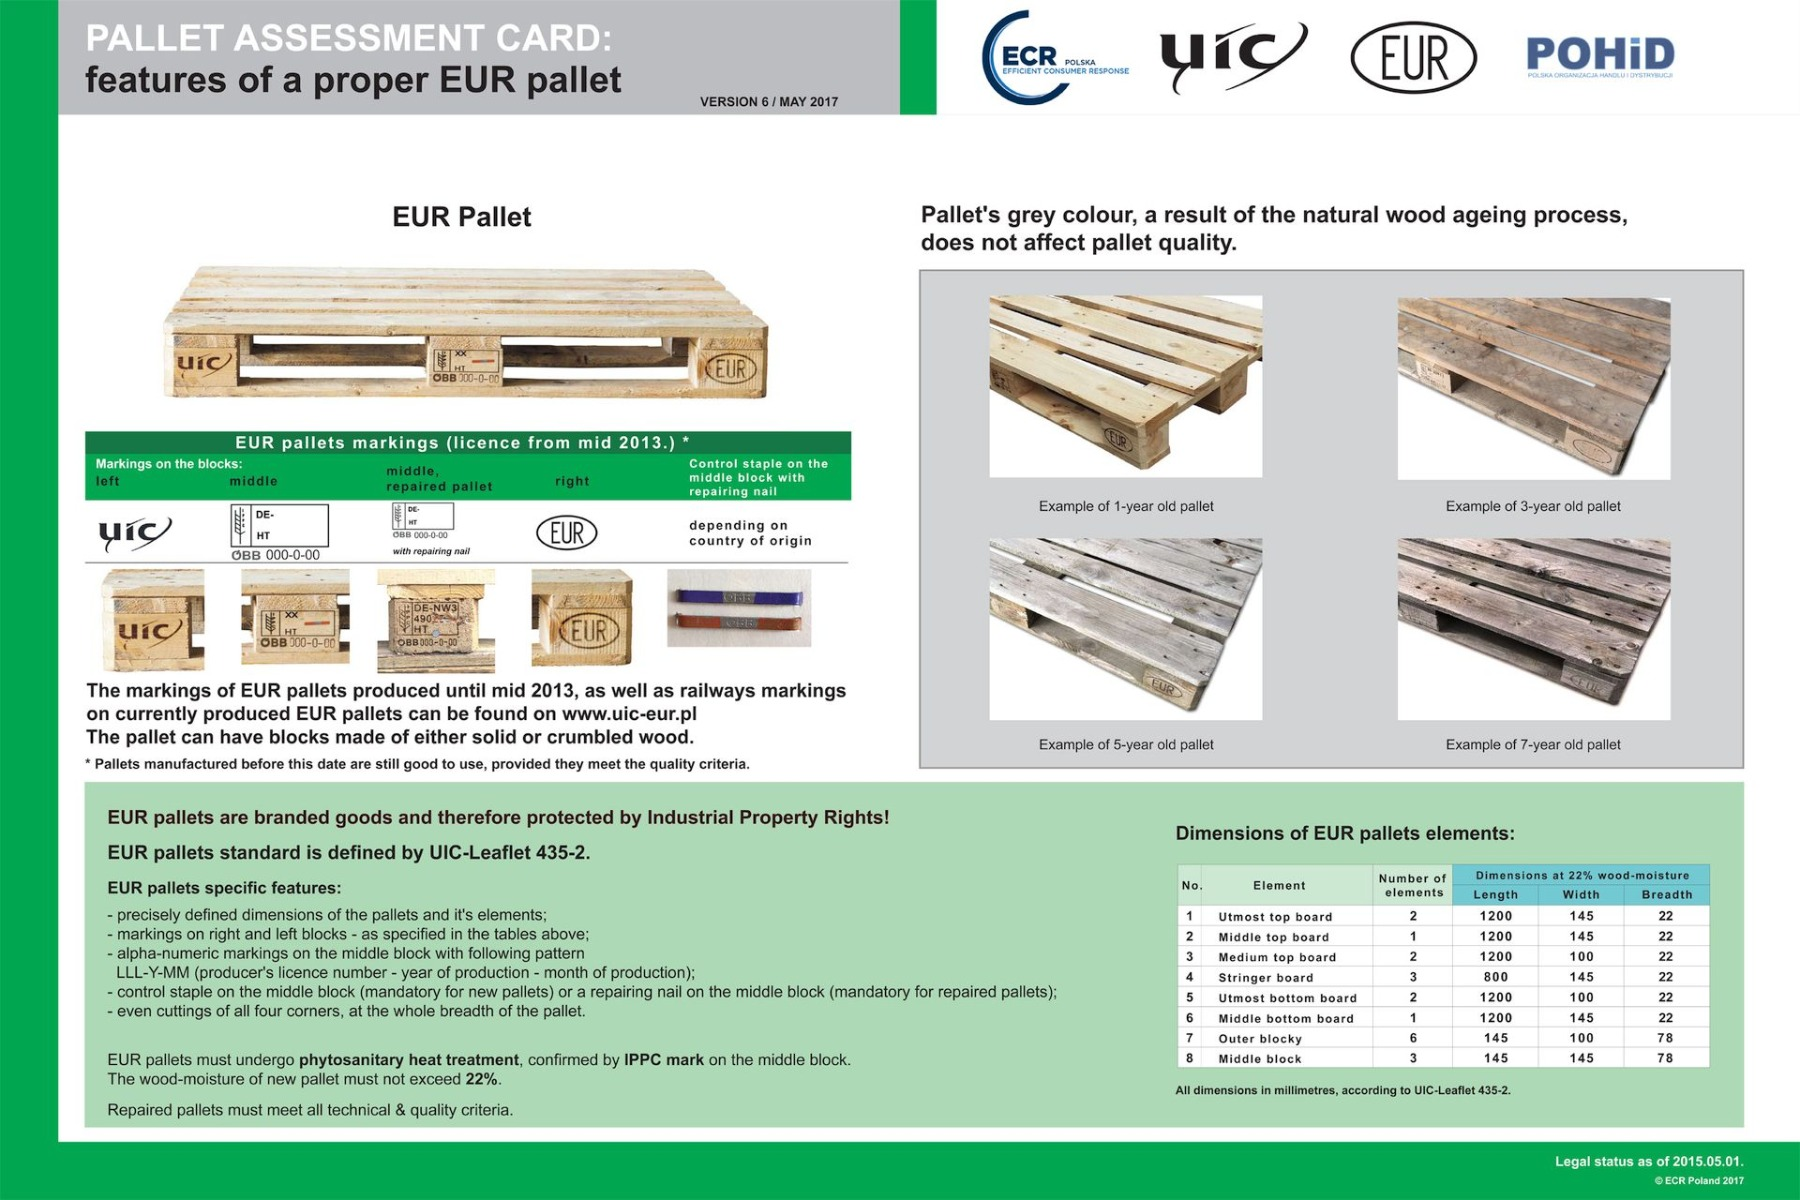 Pallet assessment card - europal